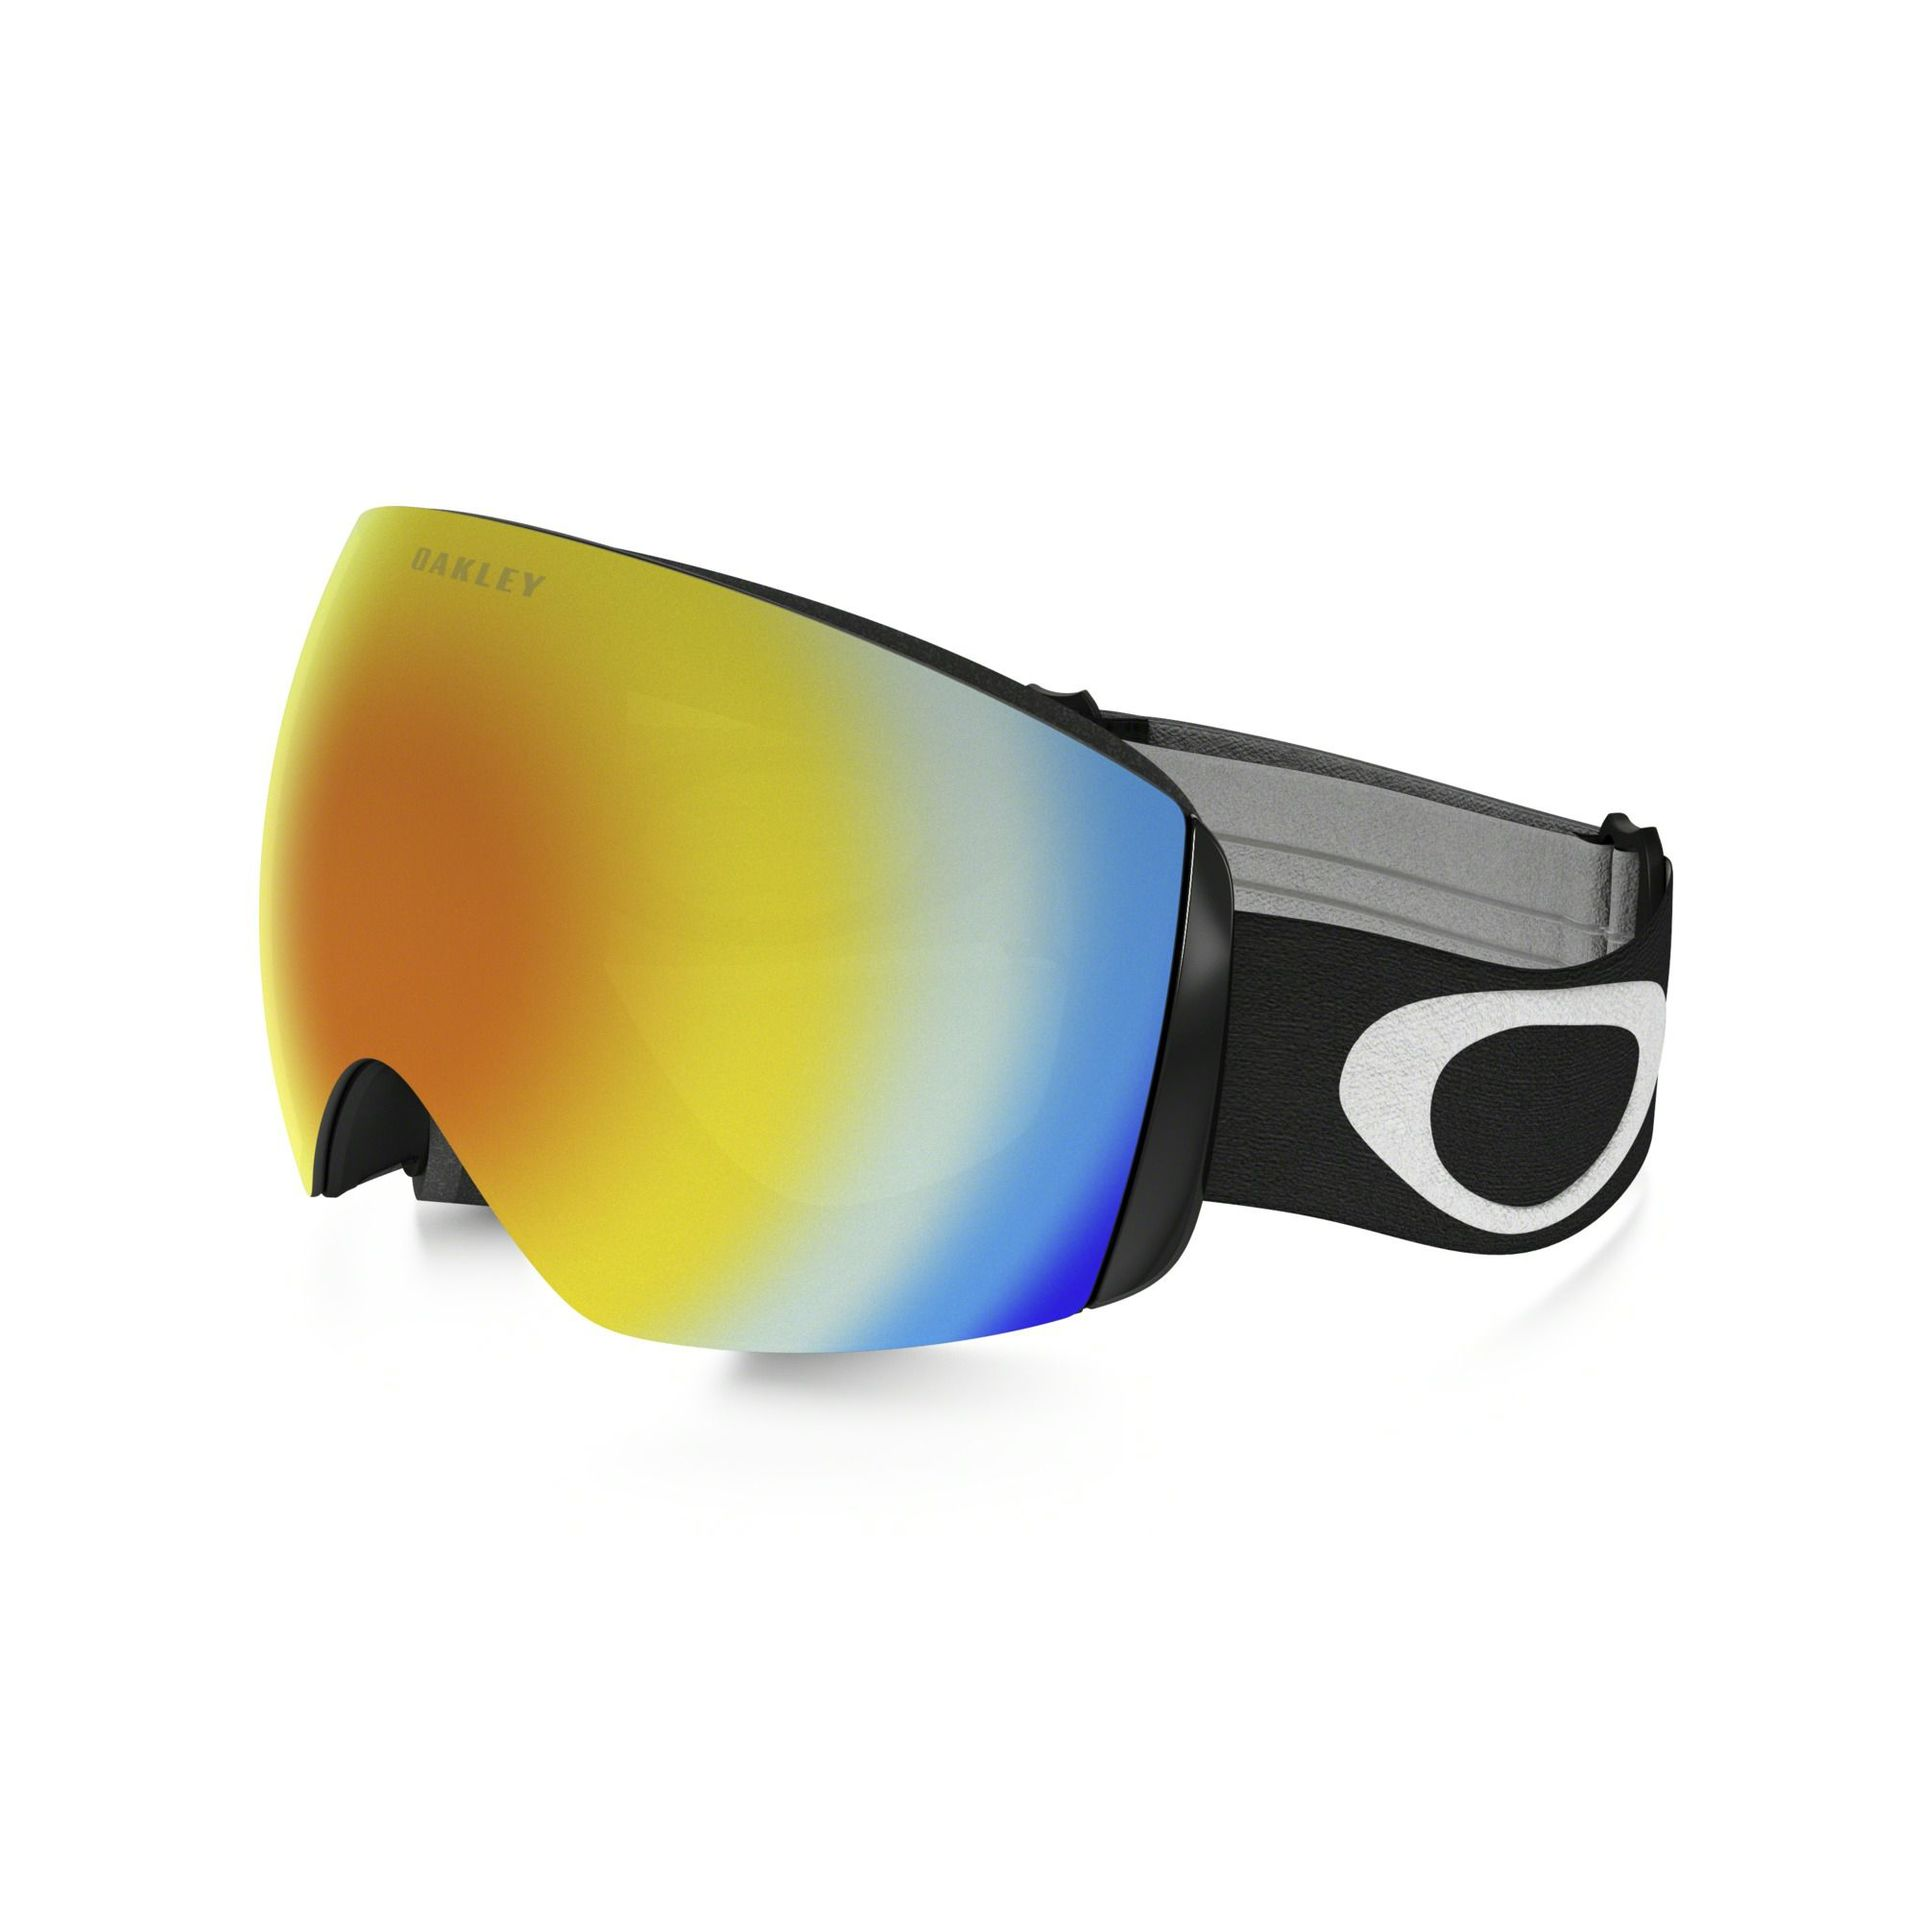 GOGLE OAKLEY FLIGHT DECK XM MATTE BLACK FIRE IRIDIUM